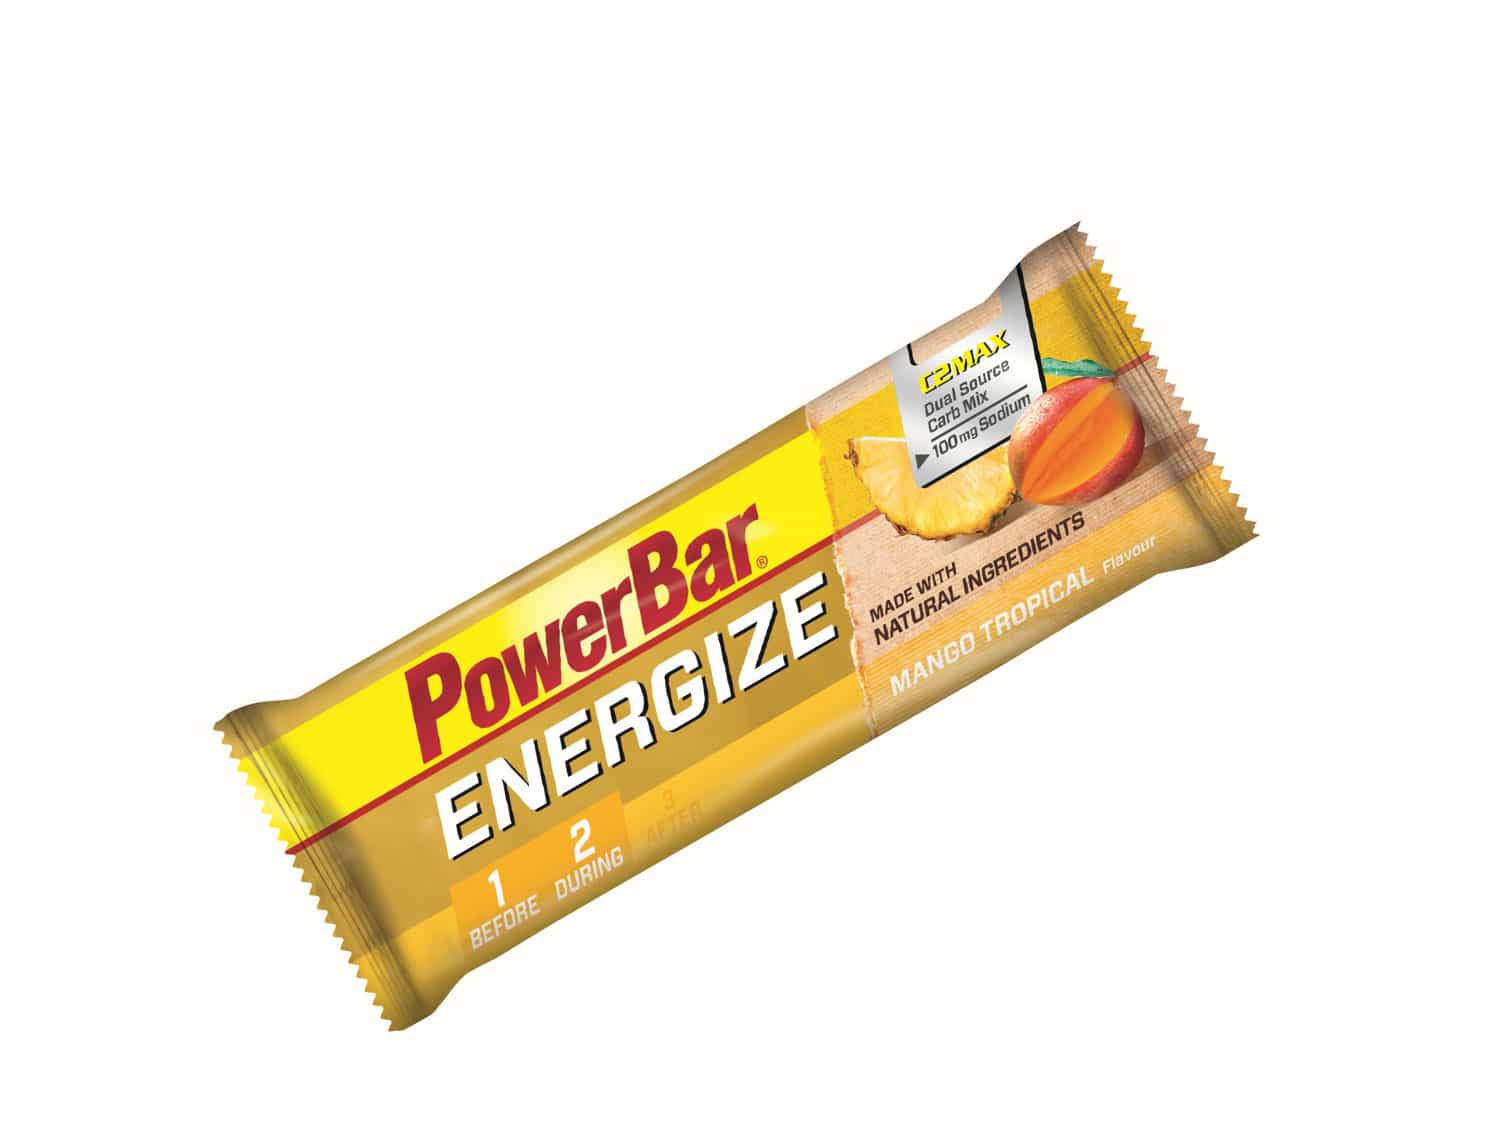 PowerBar Energize Riegel Mango Tropical